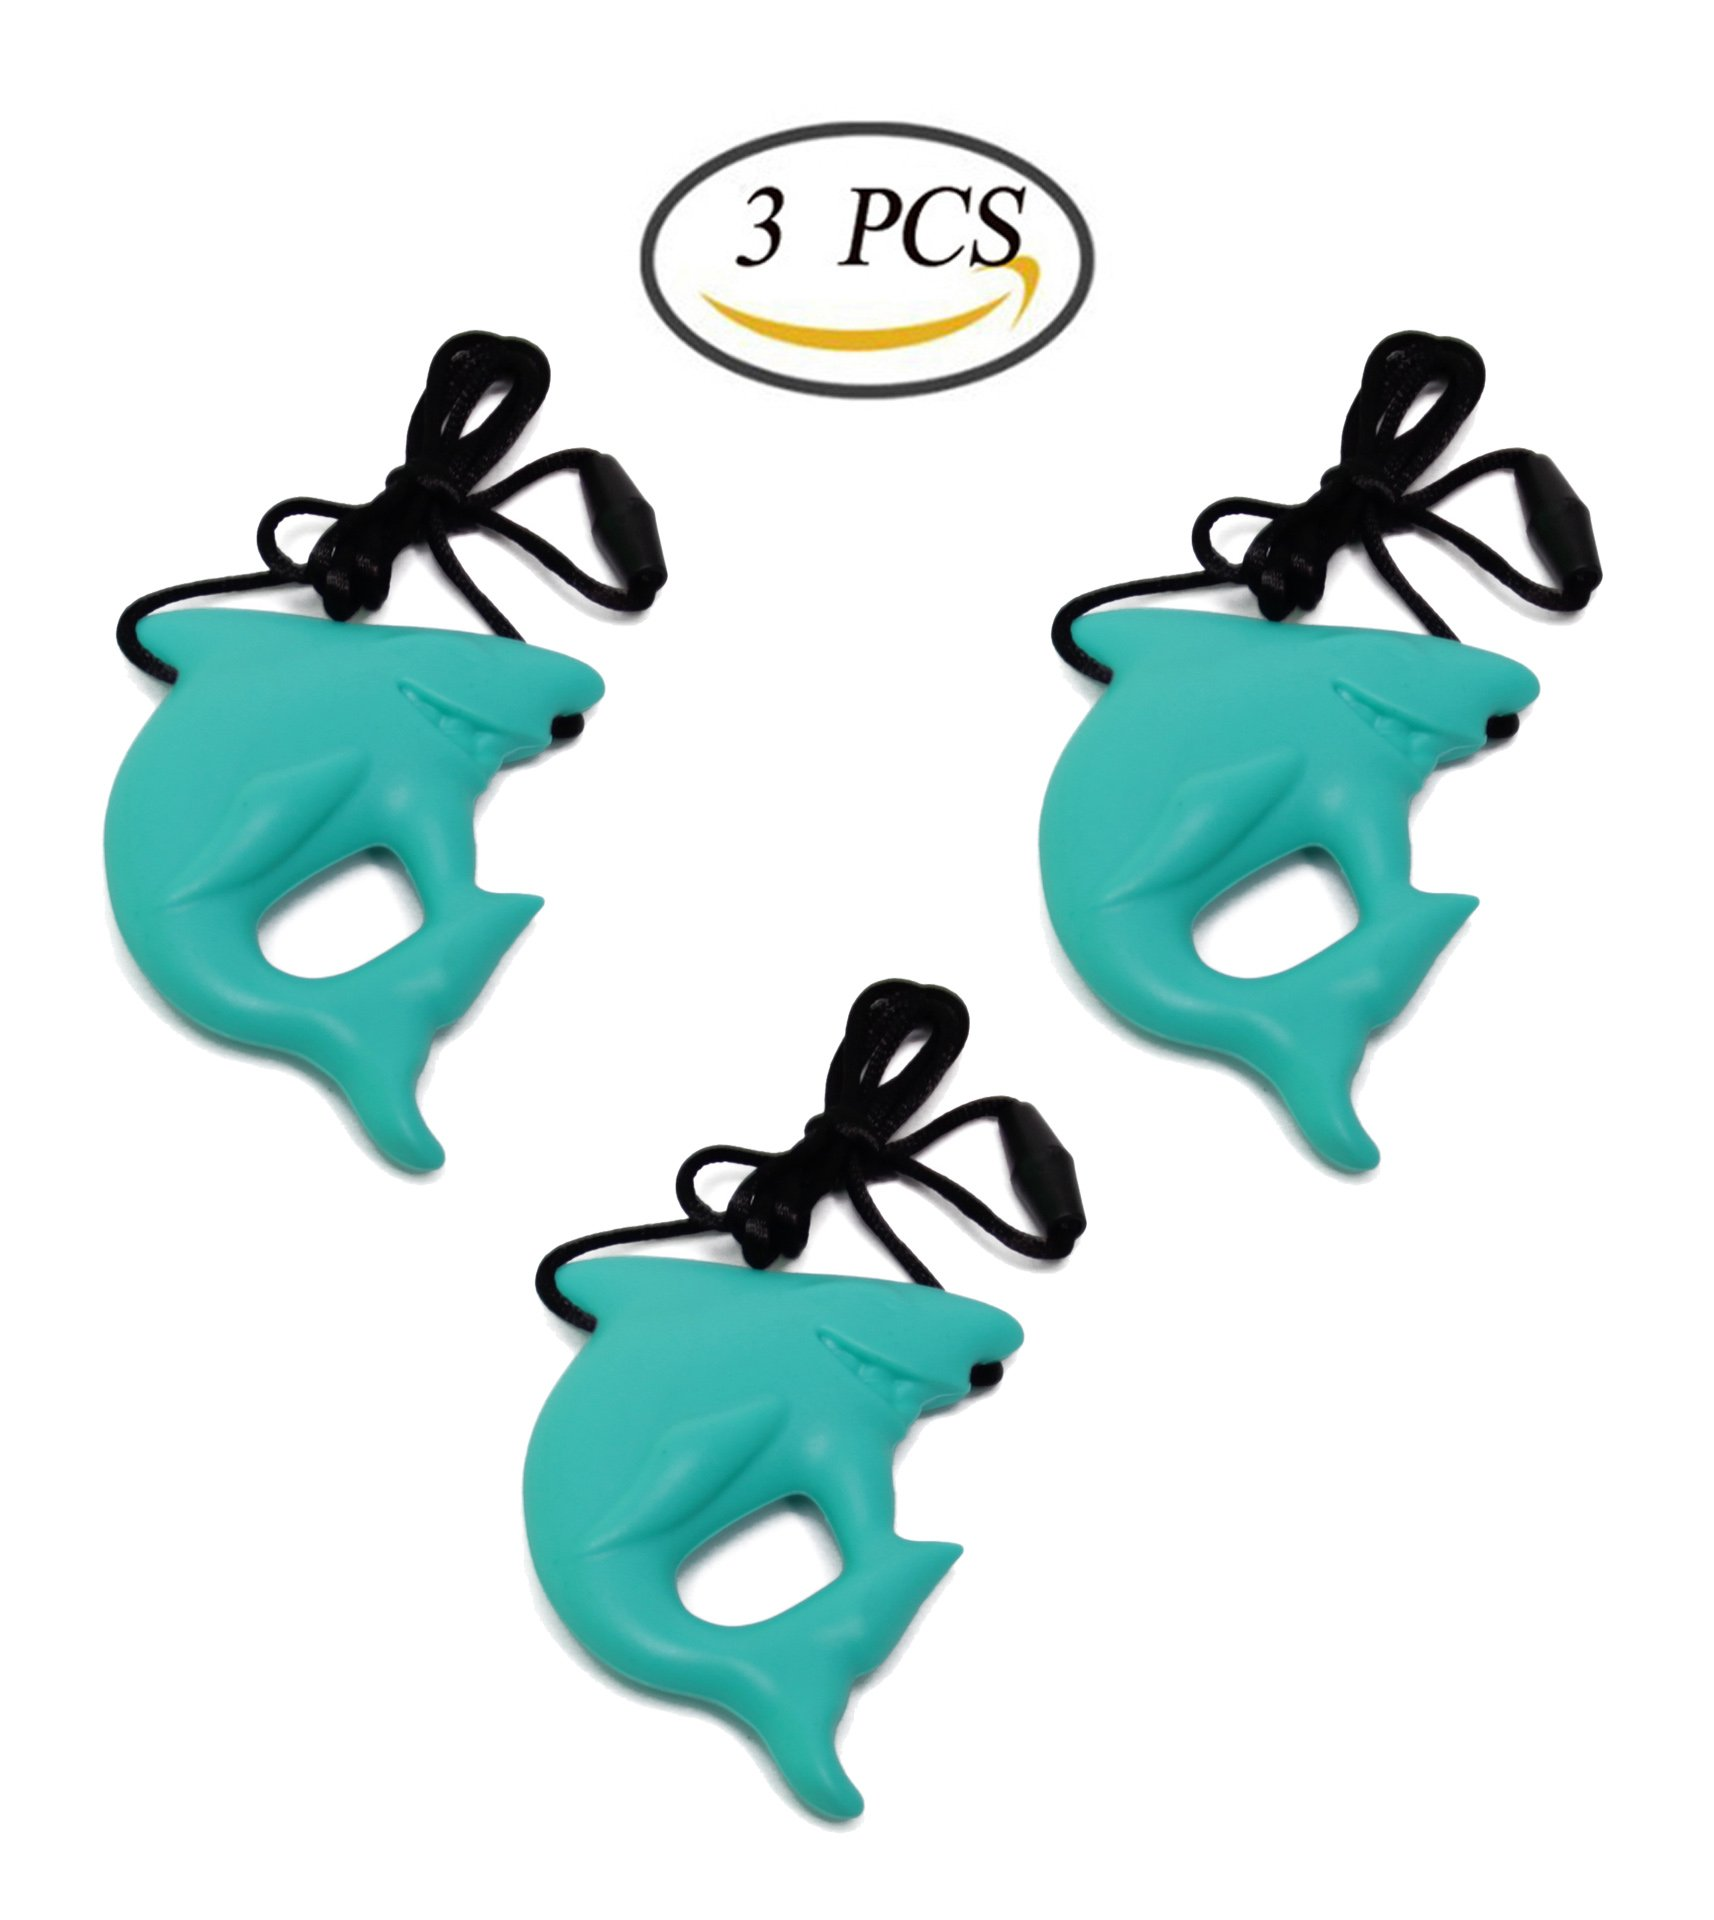 Bluexury 3 Pack Shark Chewy Necklace Set Silicone Teething Necklace Baby Chew Pendant Necklace for Nursing Mom and Autism and Oral Motor Special Needs Kids (Green)